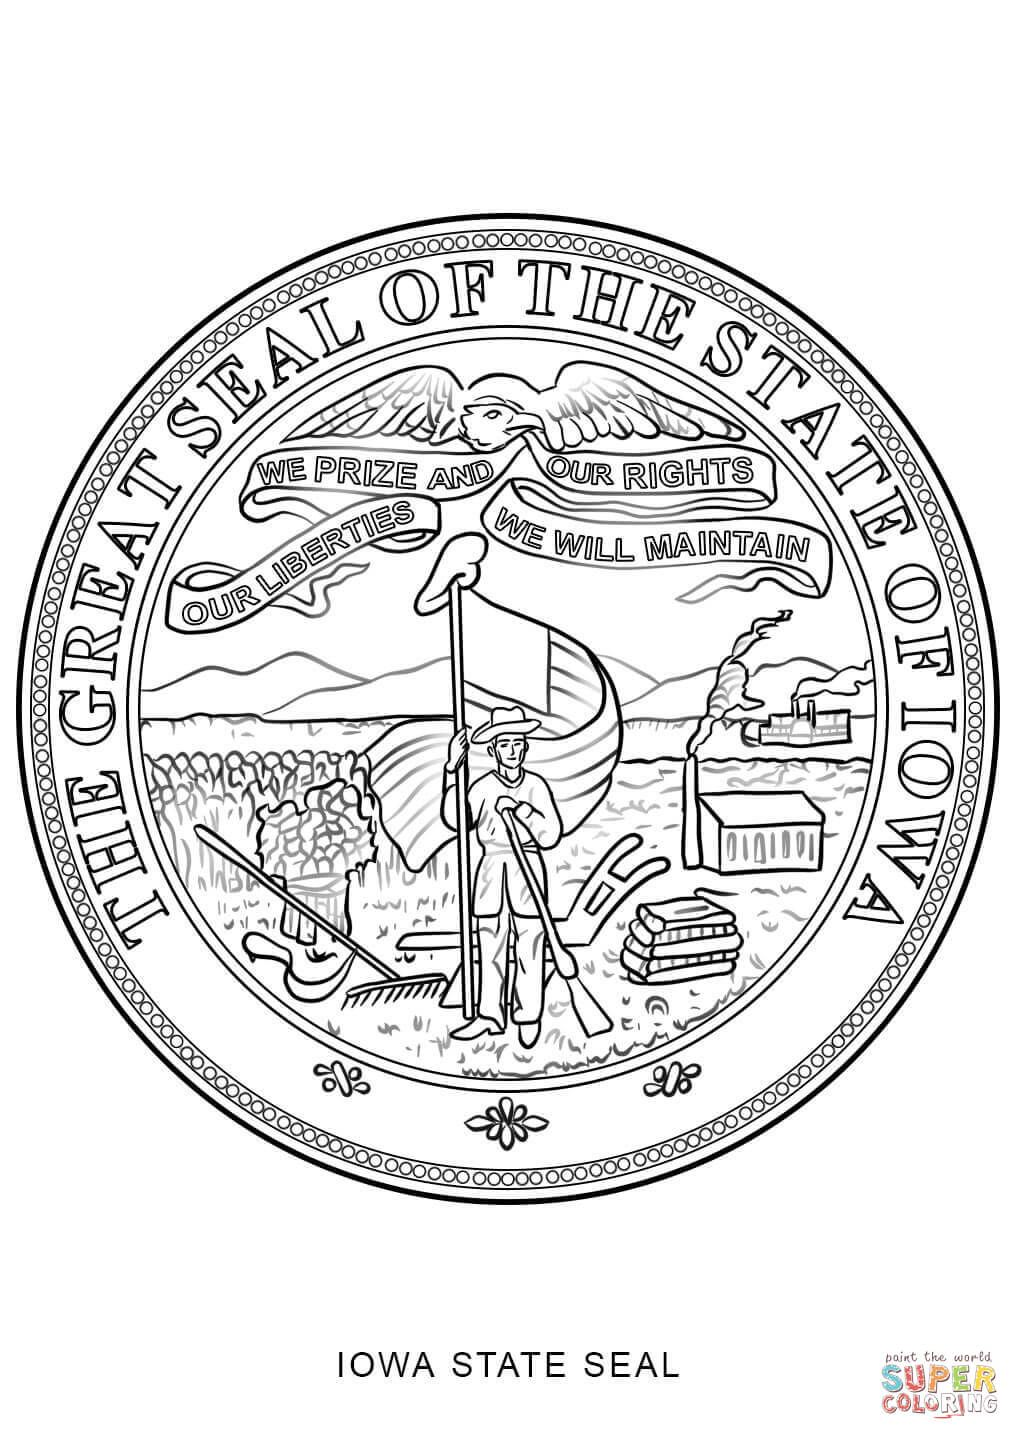 Click The Iowa State Seal Coloring Pages To View Printable Version